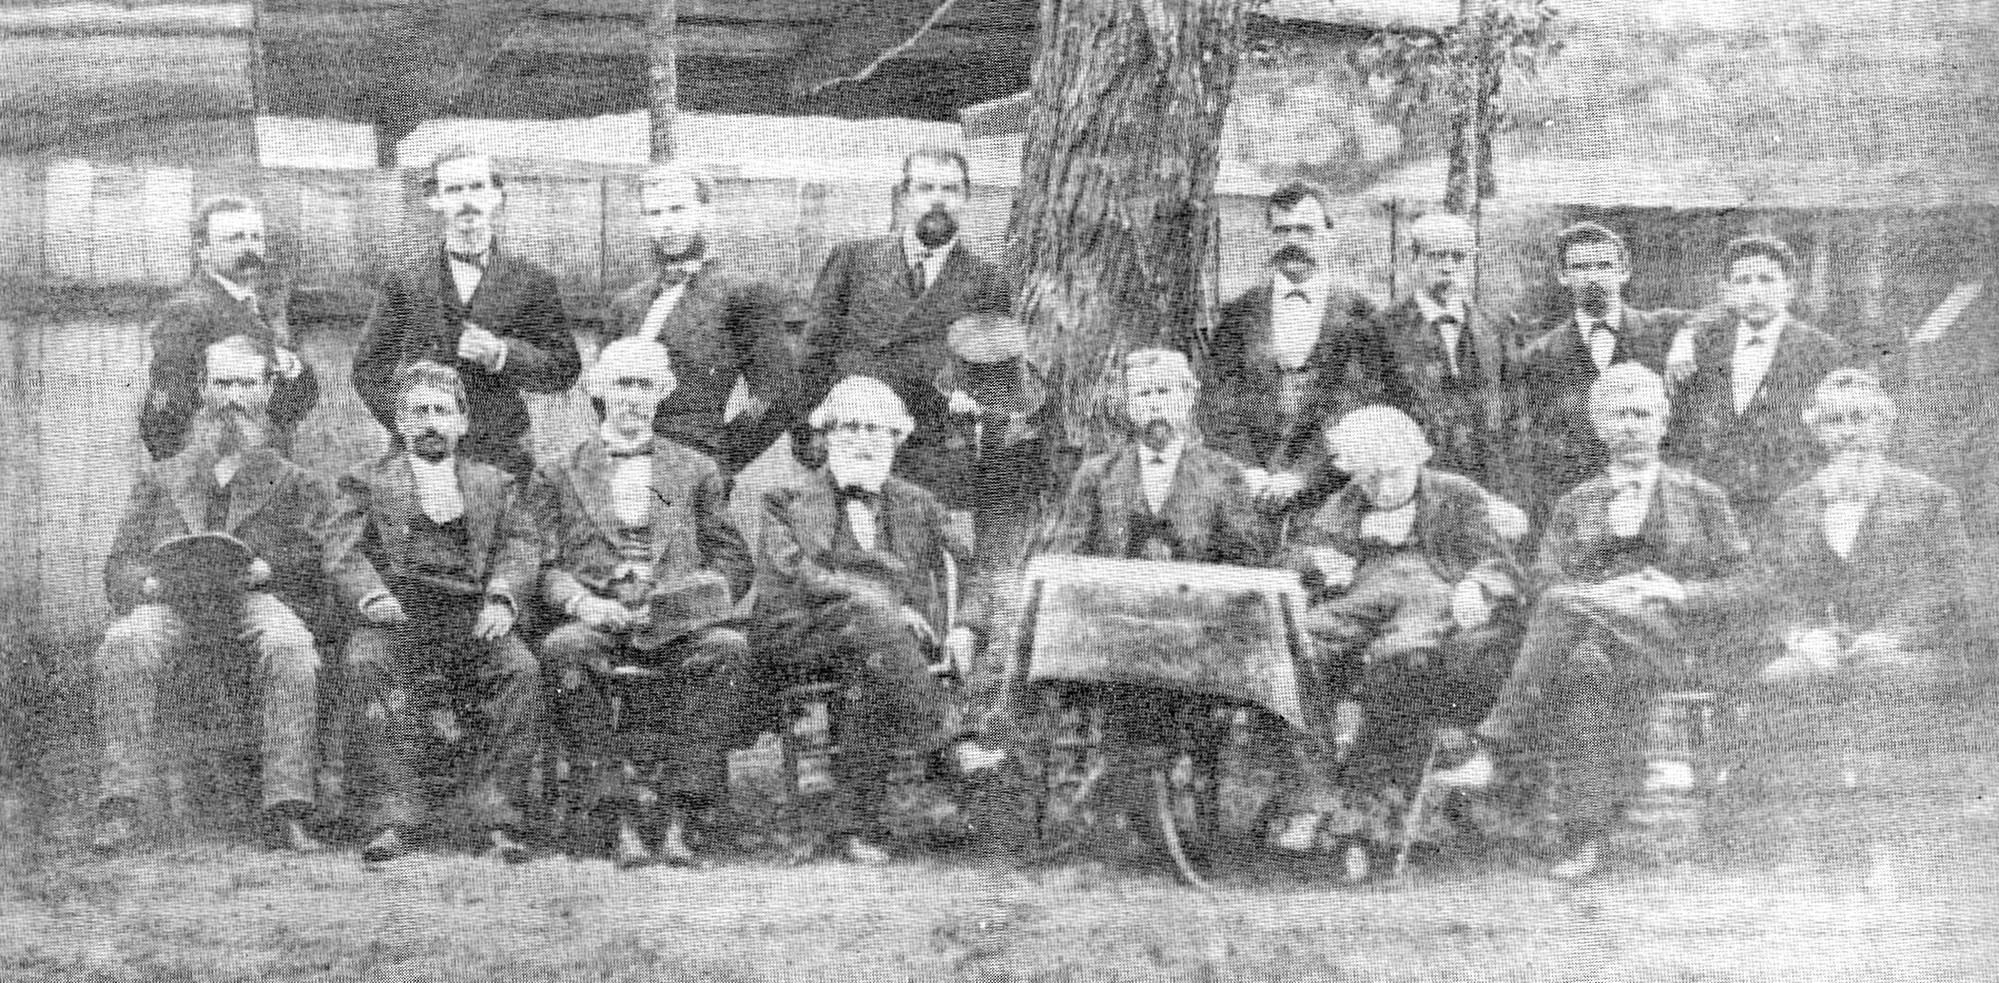 With the exception of Col. J.D. Blanding, who was out of town, this is a picture of the entire Sumter County Bar of 1876, taken by J.D. Wilder. Standing from left are R.L. Cooper, Joseph H. Earle, R.D. Lee, J.G. Richardson, S. Mayrant, G.E. Haynsworth, J.D. Dargan, and Marion Moise. Sitting are J.J. Fleming, E.W. Moise, E.M. Seabrook, W.F.B. Haynsworth, Judge Shaw, J.A.G. Richardson (taking a quick nap), T.B. Fraser and John S. Richardson.